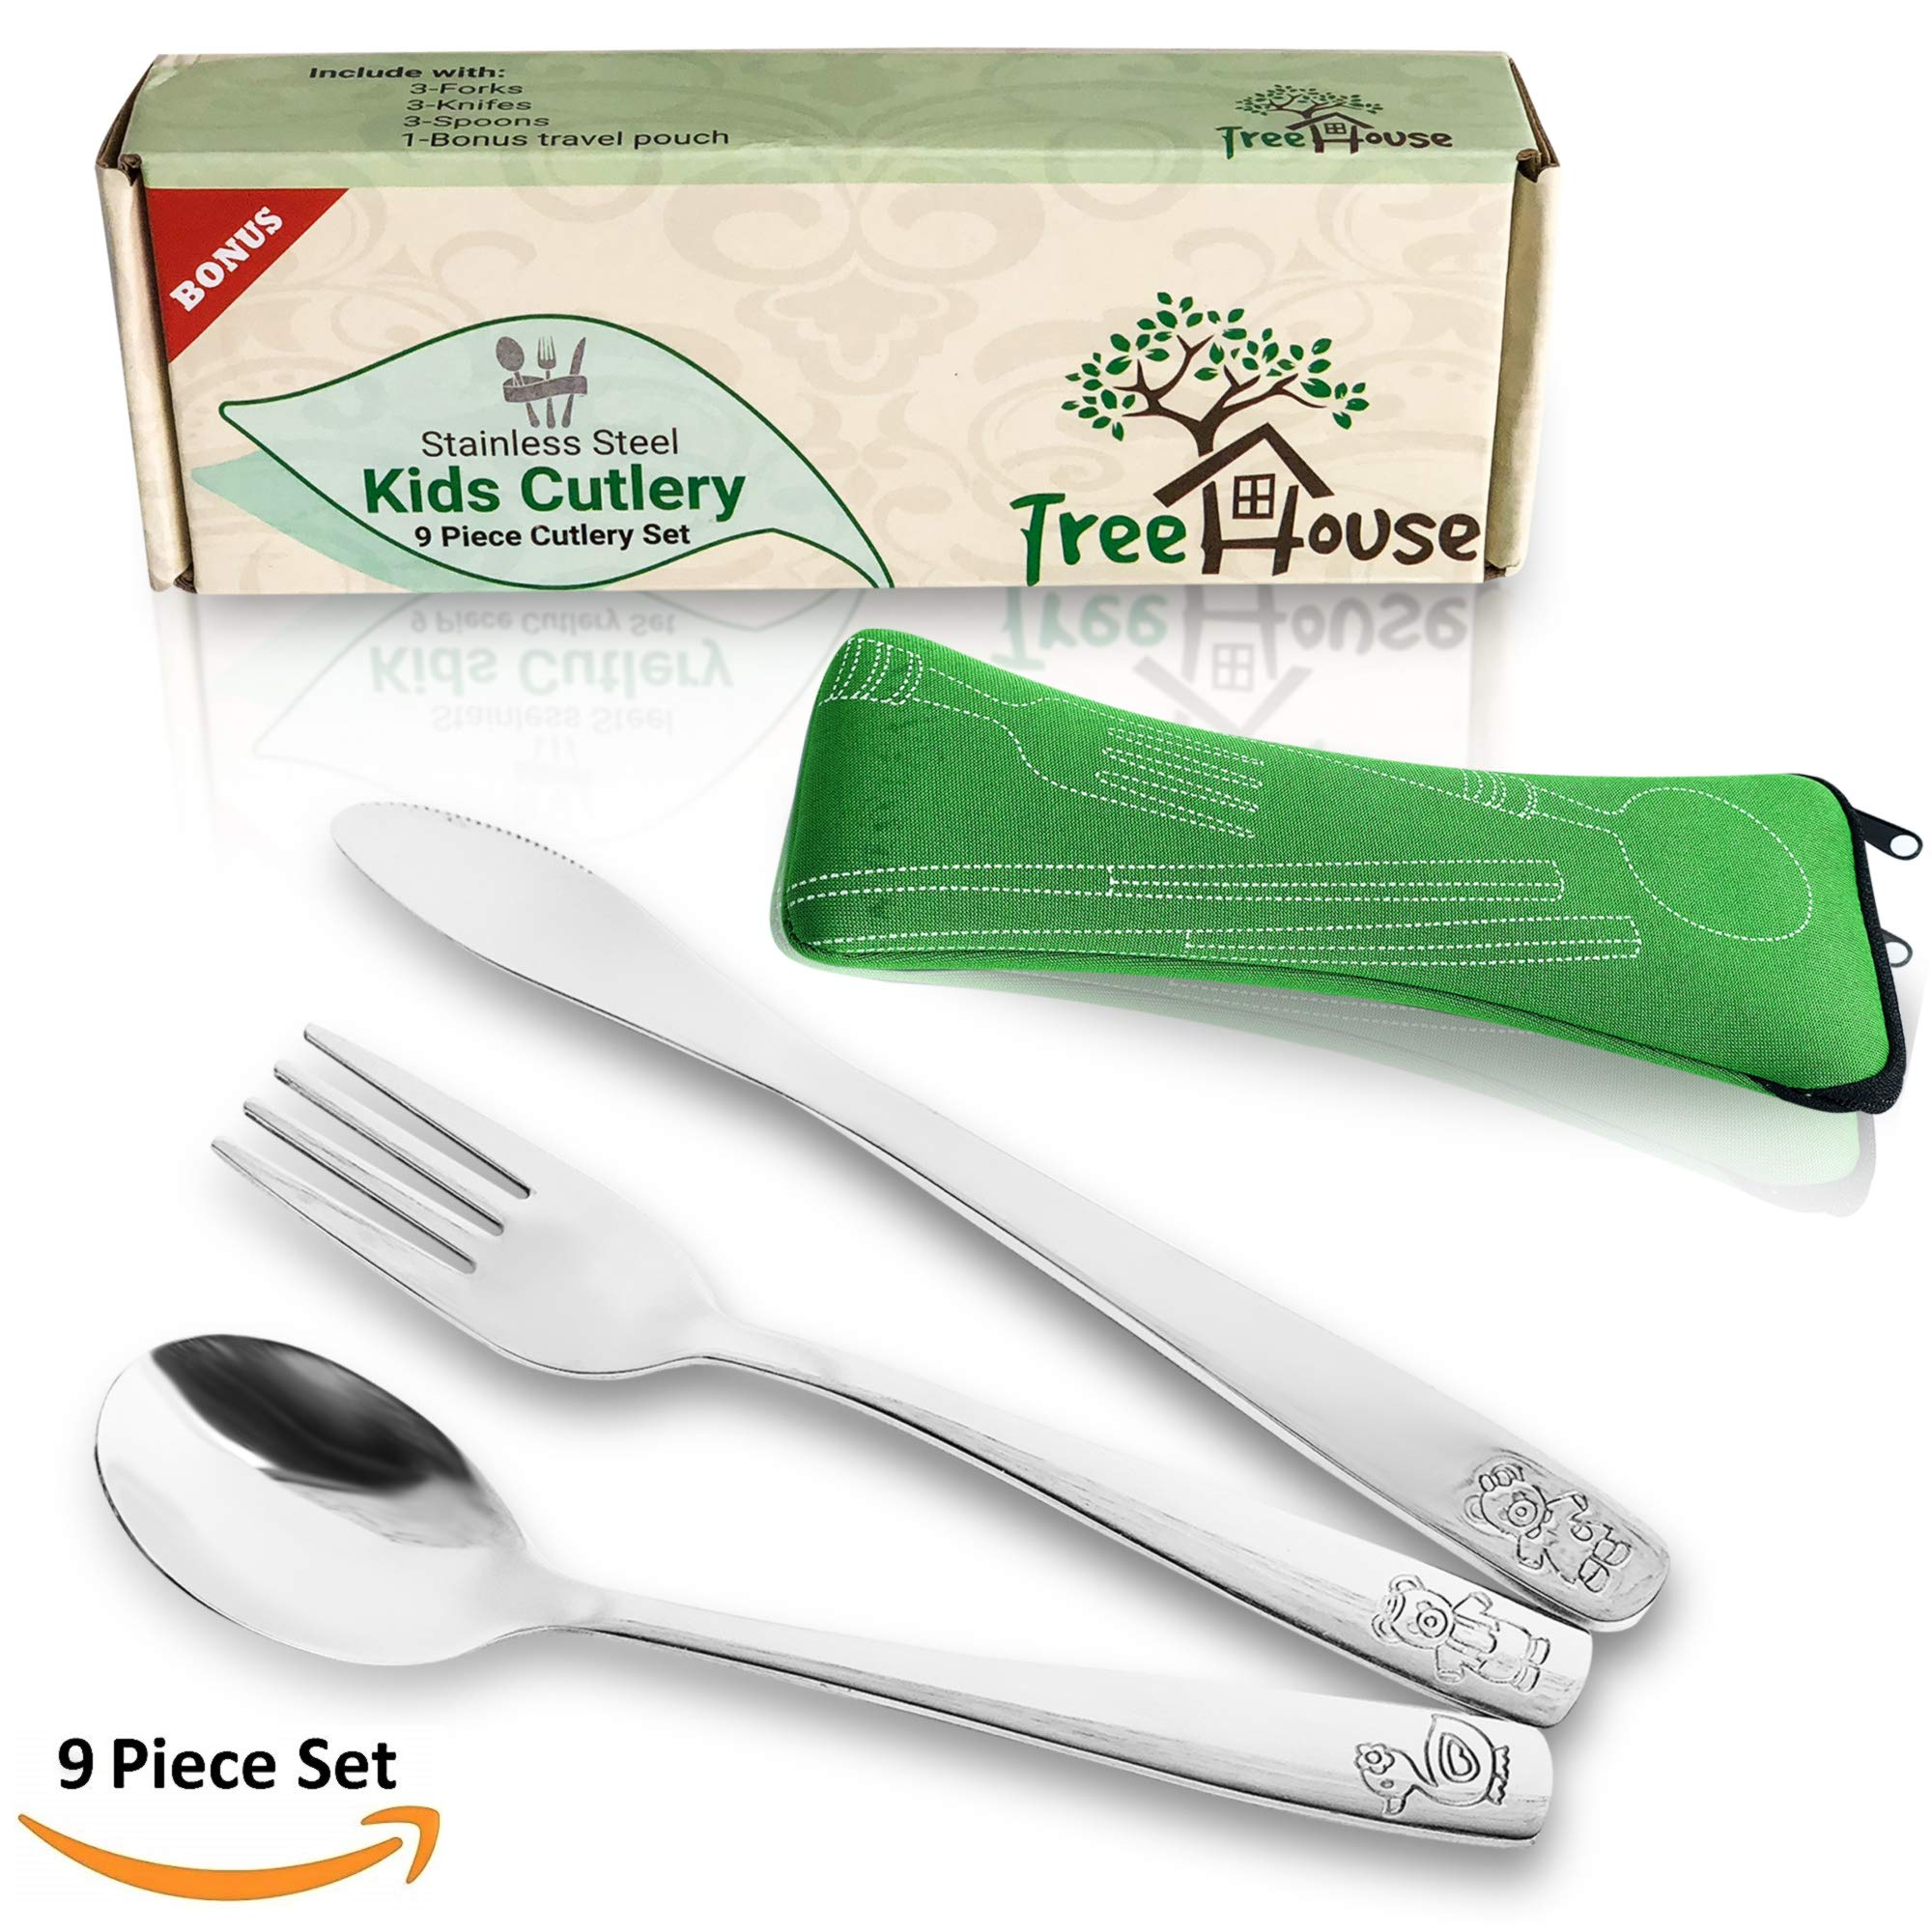 Kids Cutlery 9 Pack Stainless Steel Children's Flatware 3 Forks, 3 Knives and 3 Spoons Set Includes Travel Pouch for 3 Pieces for Picnics, Camping and Preschool. Utensils for Toddlers Baby Silverware